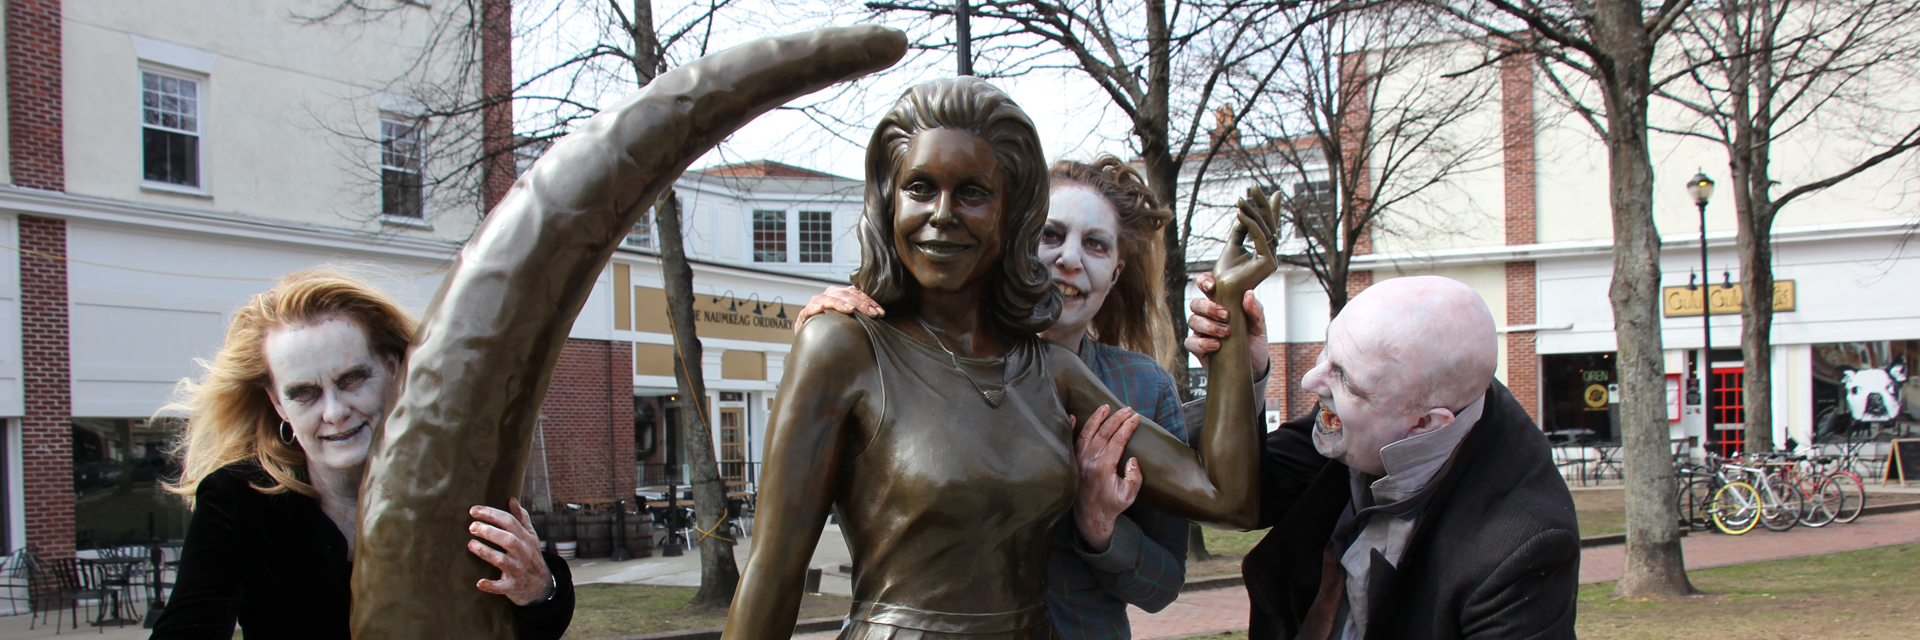 Salem MA — Bewitched statue — photo John Andrews | Salem Haunted Happenings